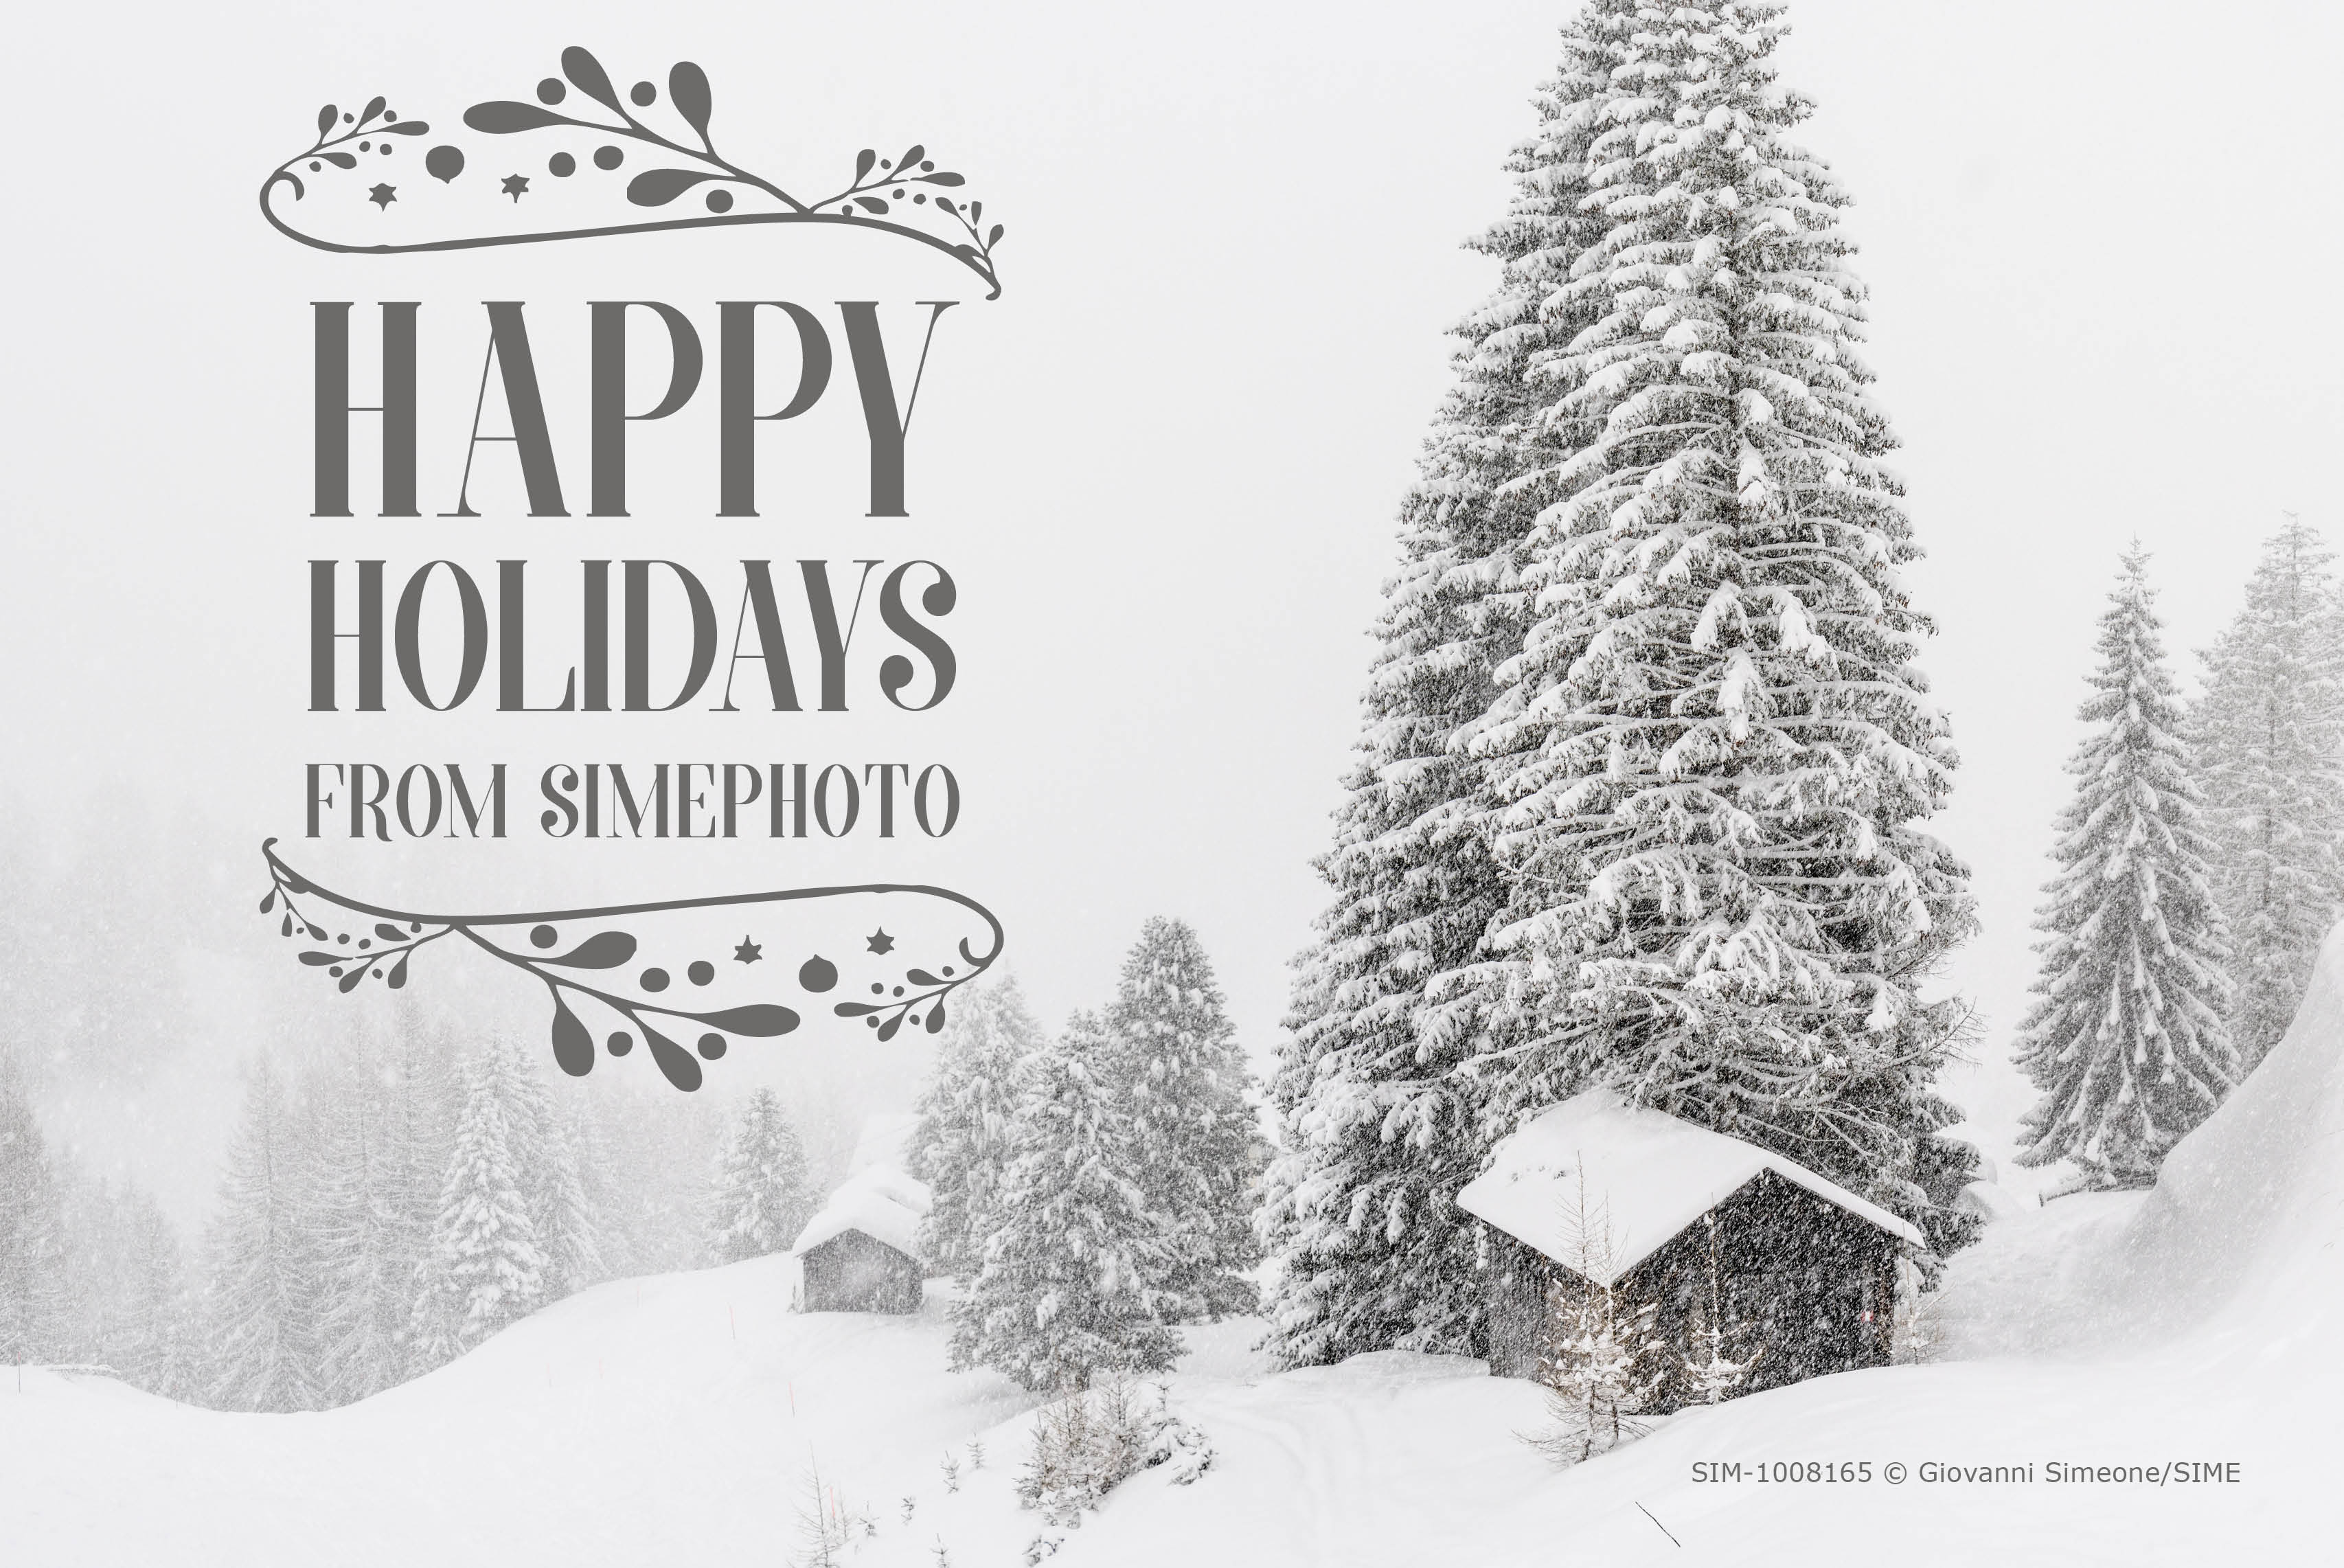 Simephoto wishes you all Happy Holidays !!! Our best wishes to all our customers, partners and contributors!